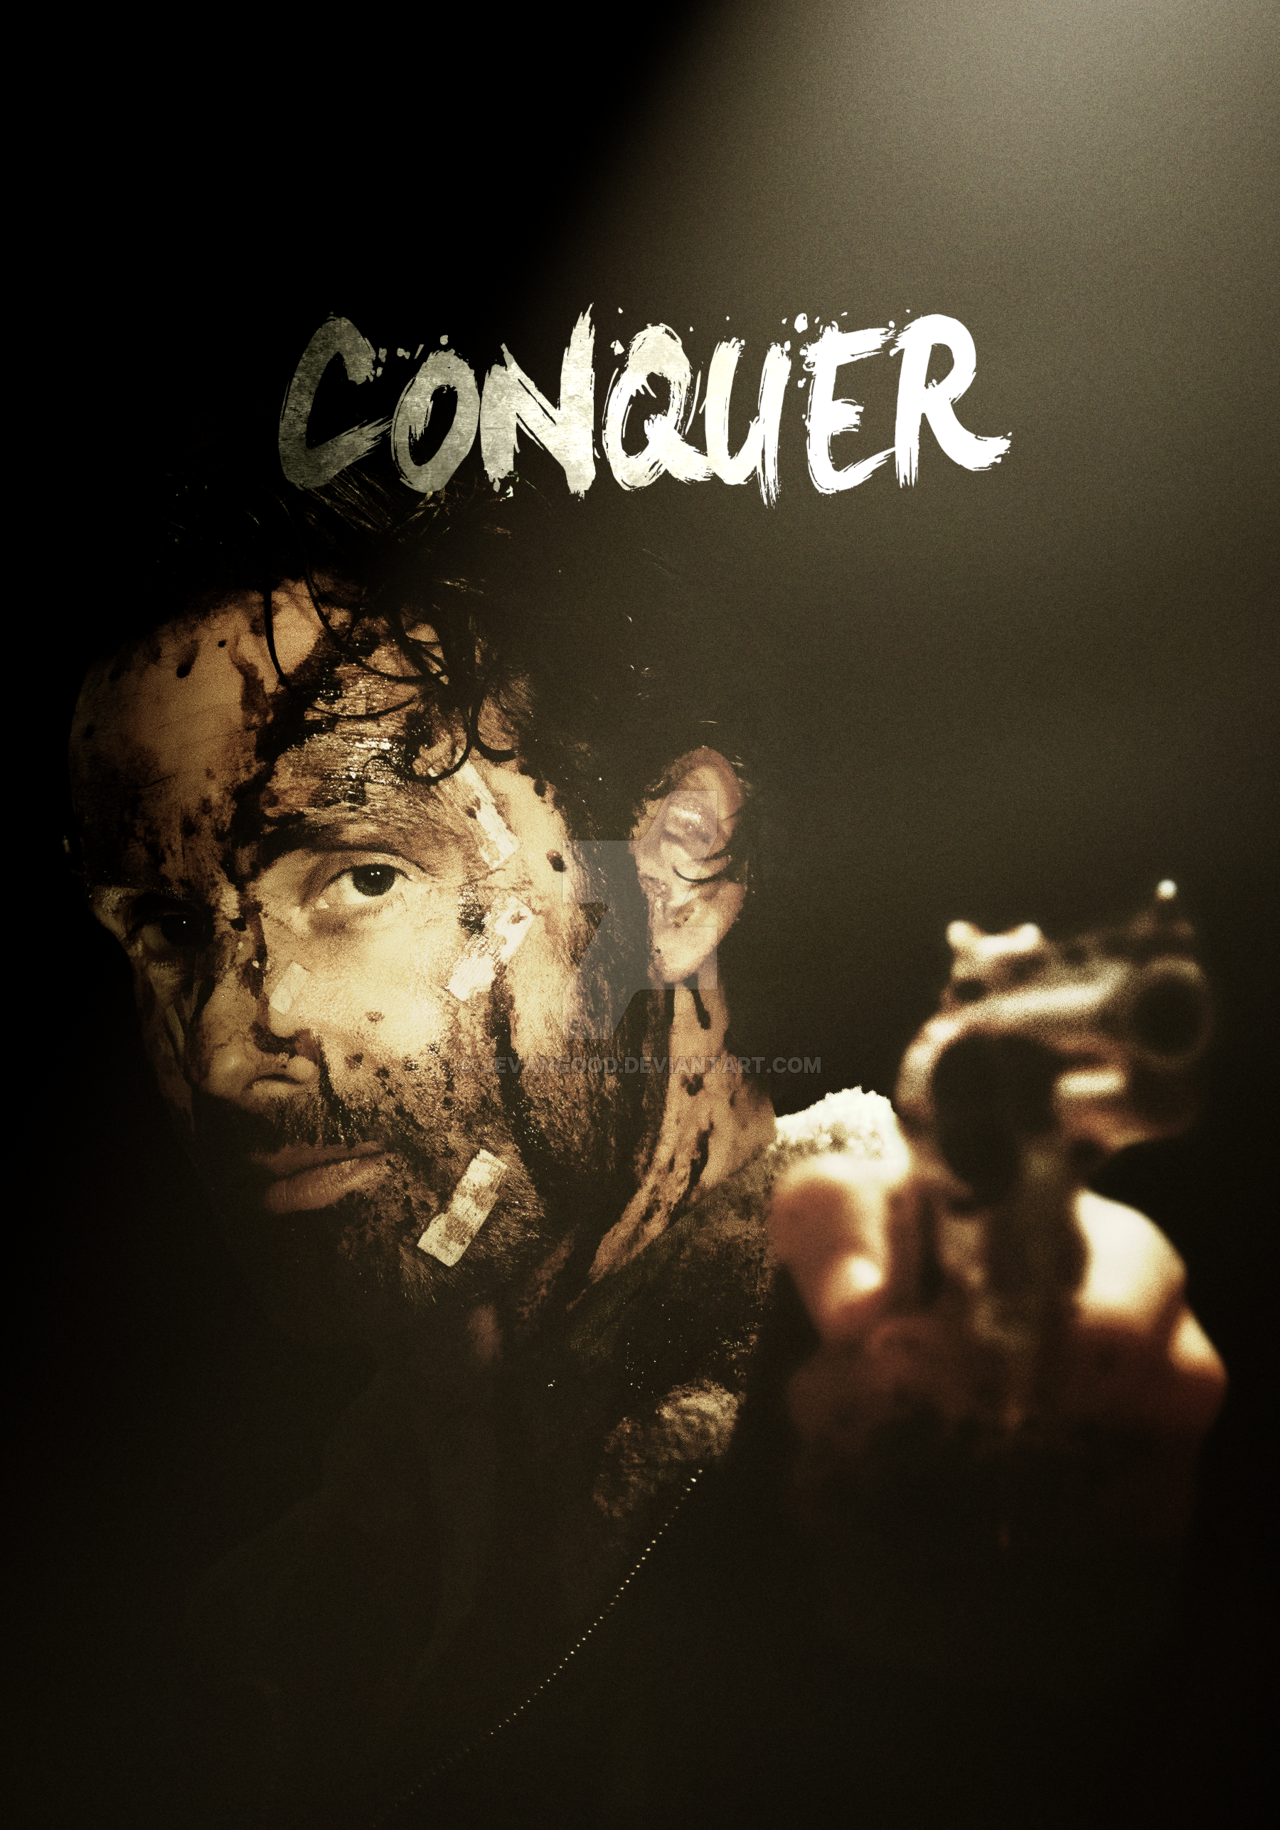 Free Download The Walking Dead Season 6 Conquer Poster By